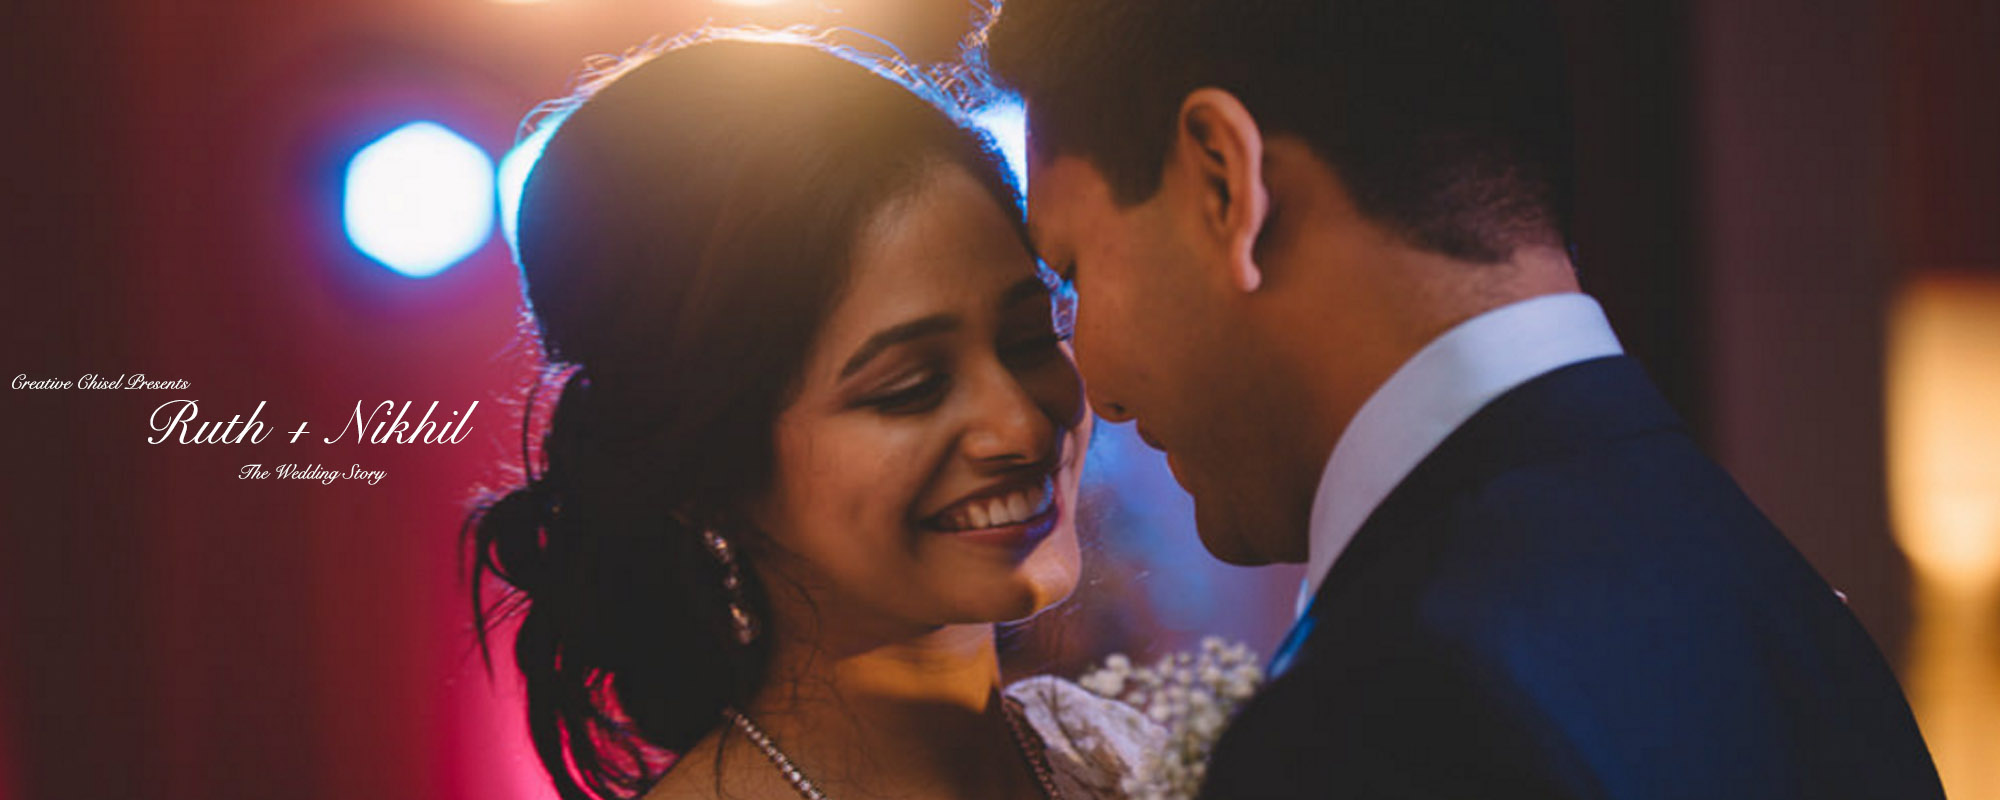 Top 10, christian Matrimonial, services in, bangalore, Marriage